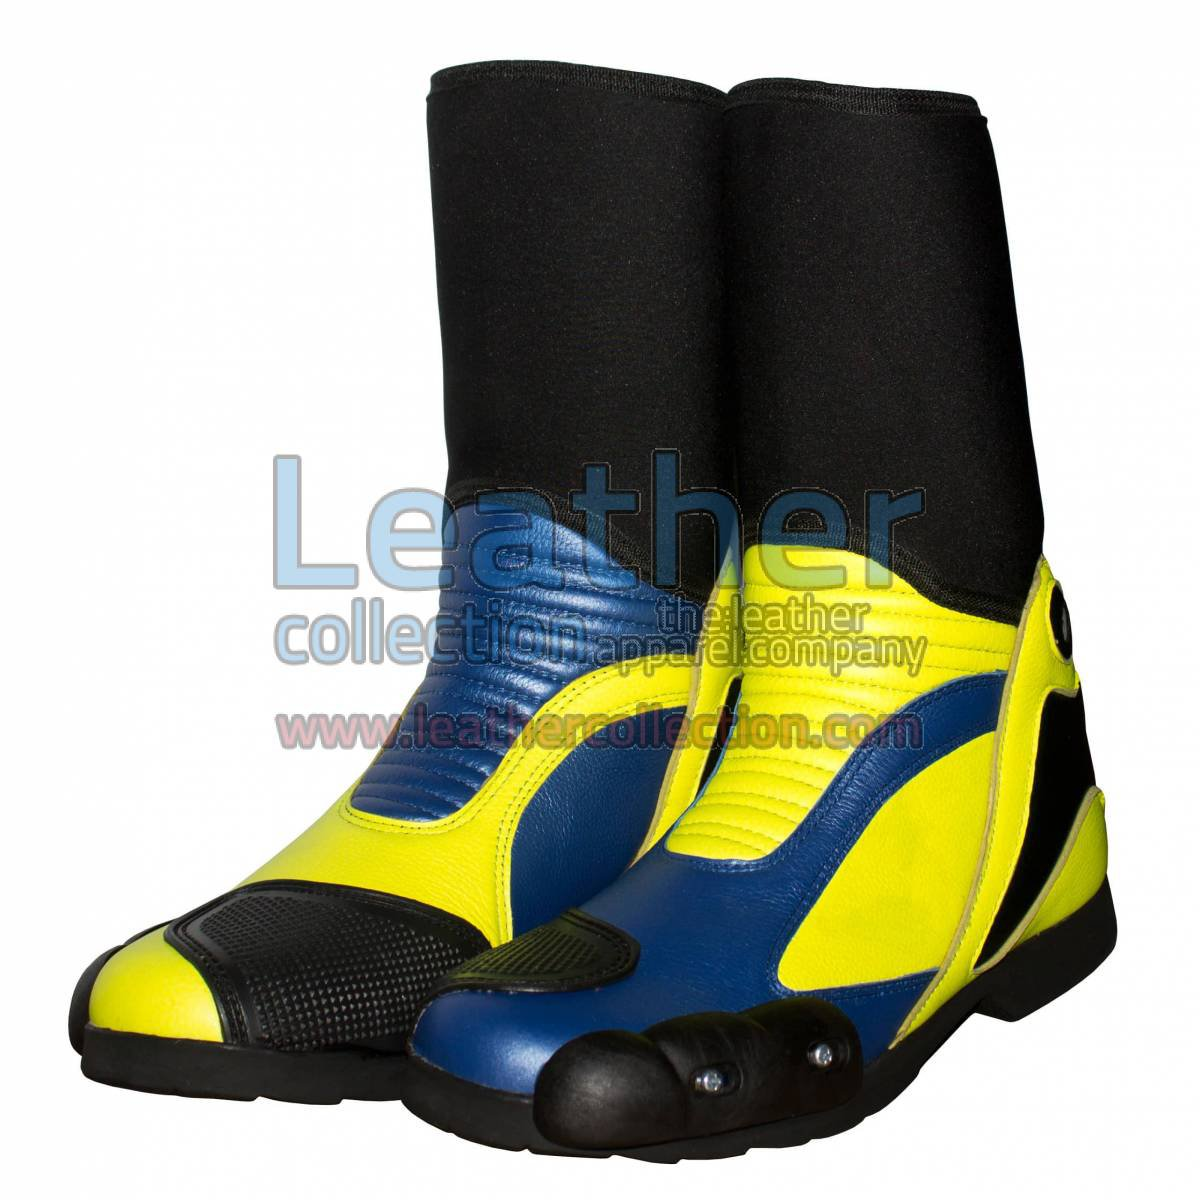 Valentino Rossi 2014 Motorcycle Race Boots